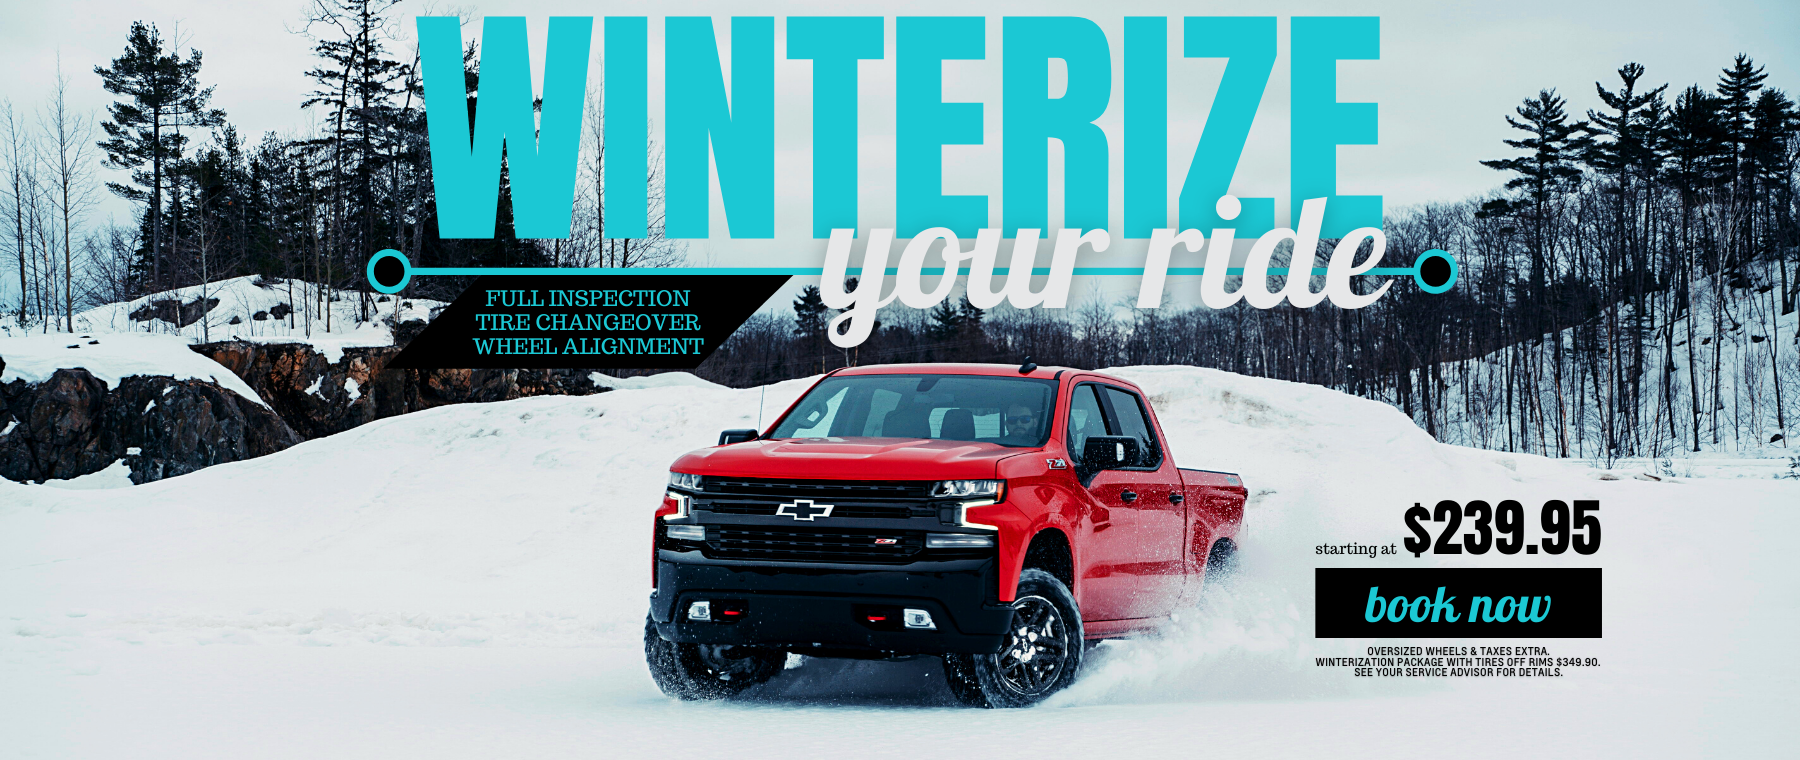 Winter Ready Service Package